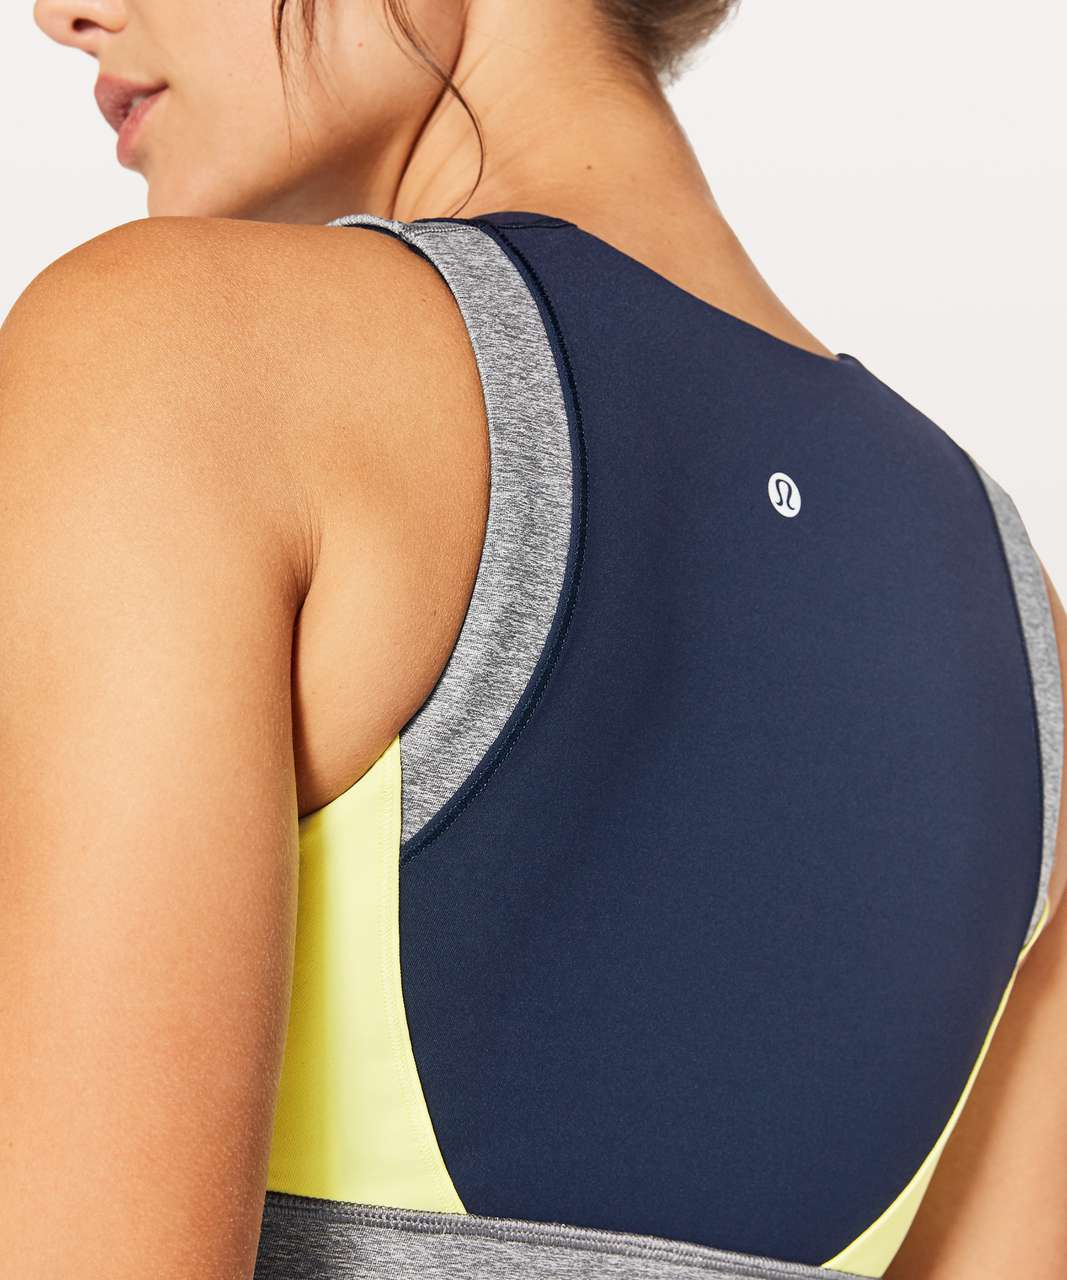 Lululemon Kick Serve Sweat Bra - True Navy / Heathered Slate / Sheer Lemon